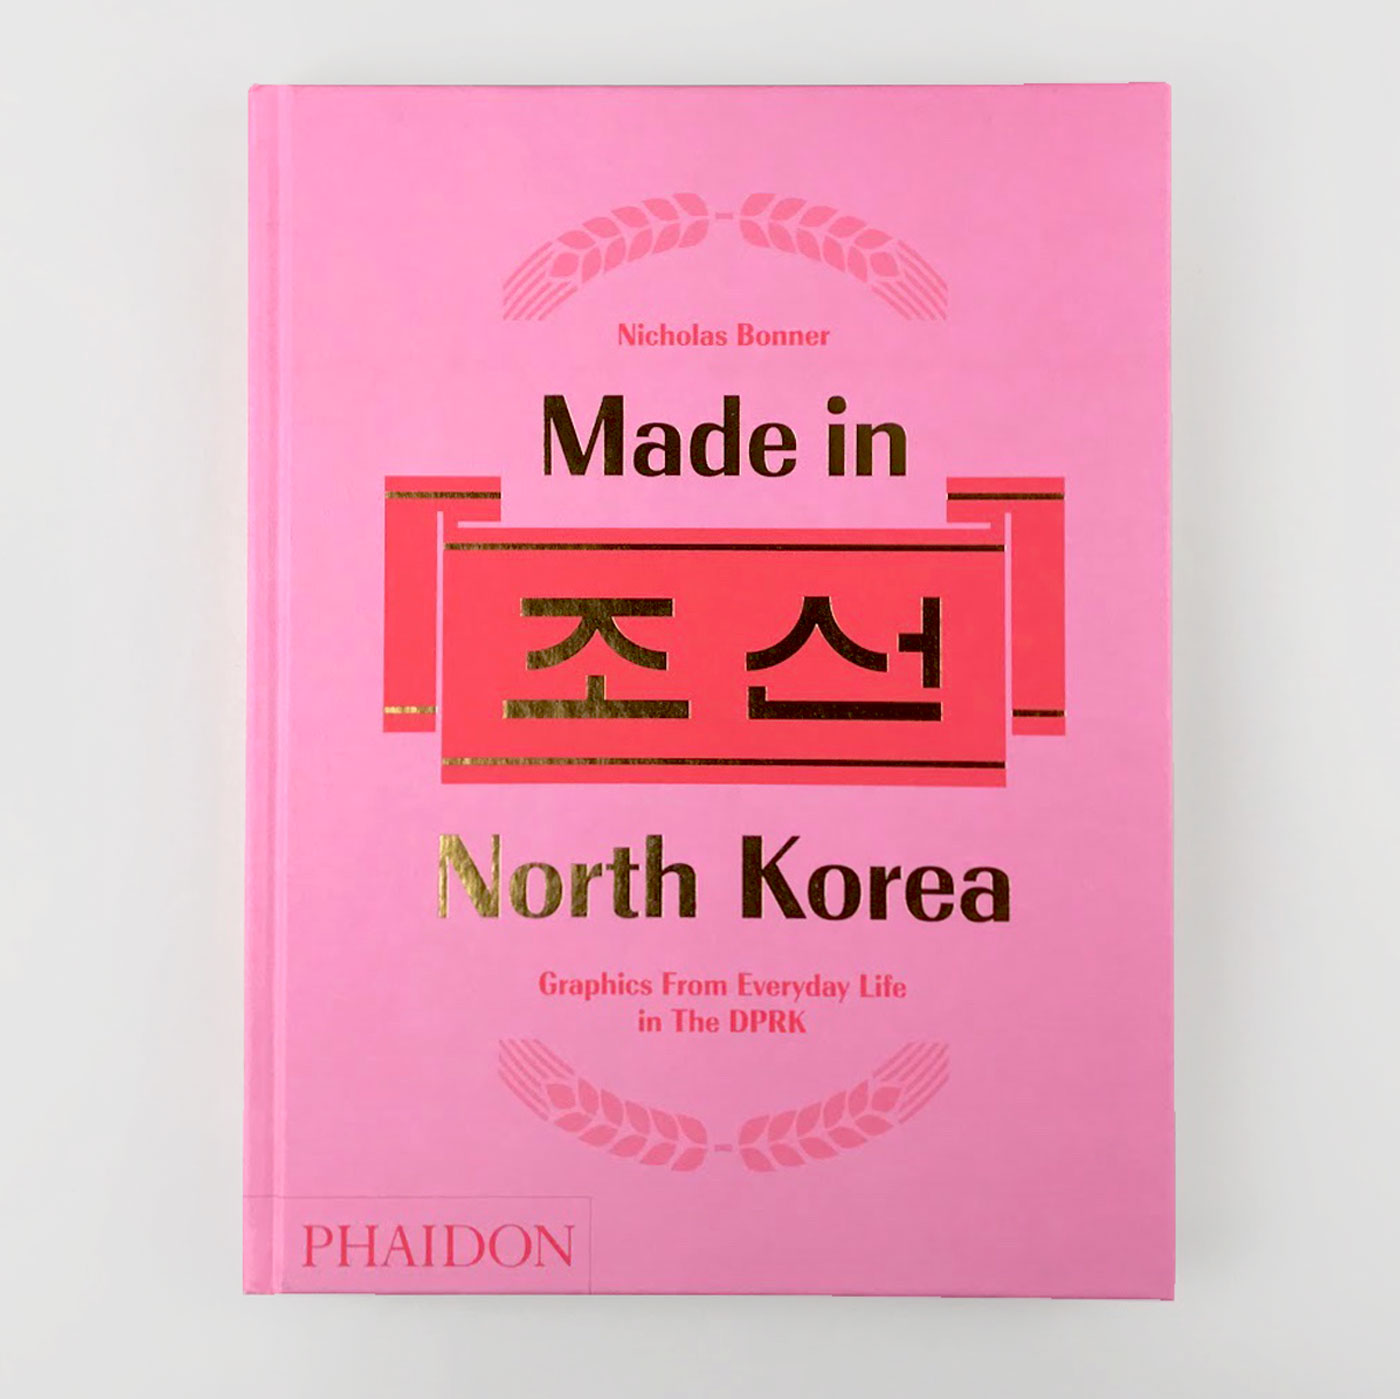 MADE IN NORTH KOREA BY NICHOLAS BONNER